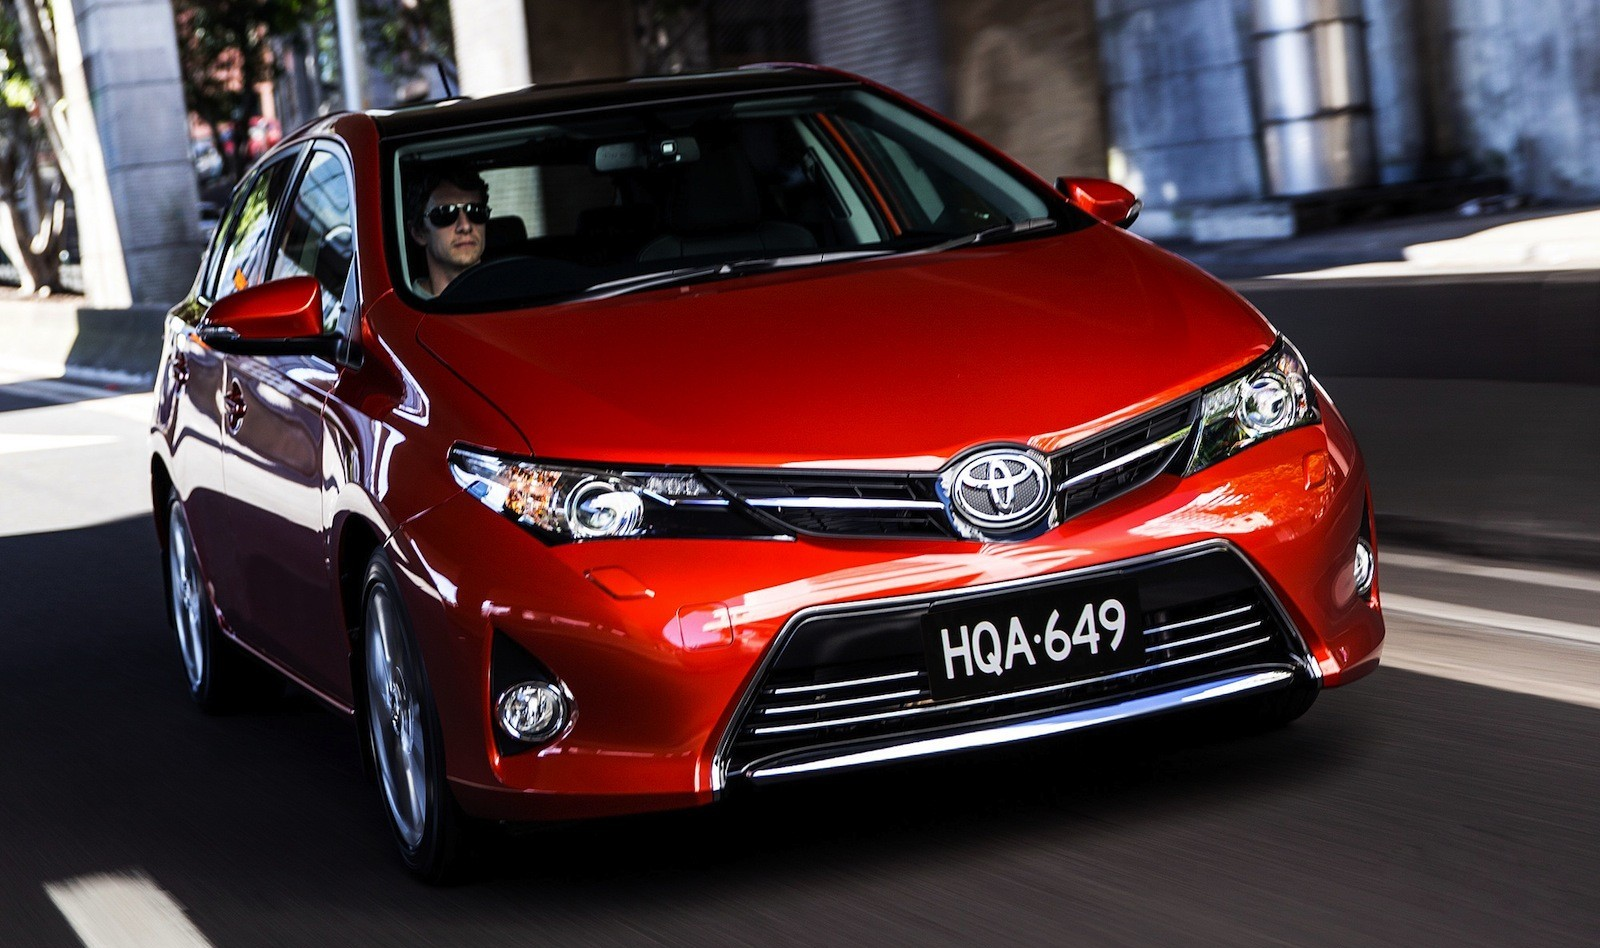 The new Toyota Corolla is like the Porsche 911 in at least one way – it